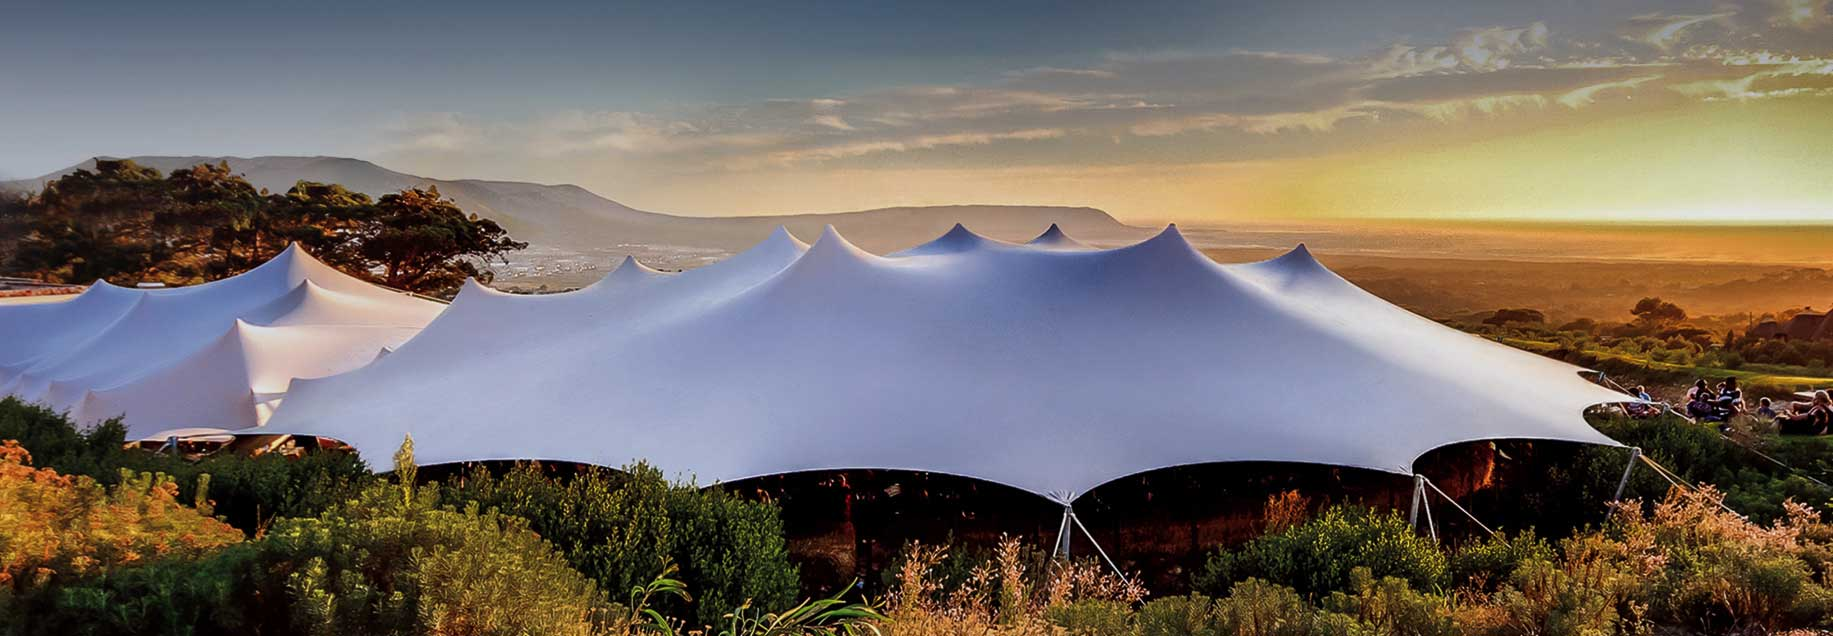 free form tent  Freeform® Tents | Stretch Tents for Sale | Bedouin Tents for ...